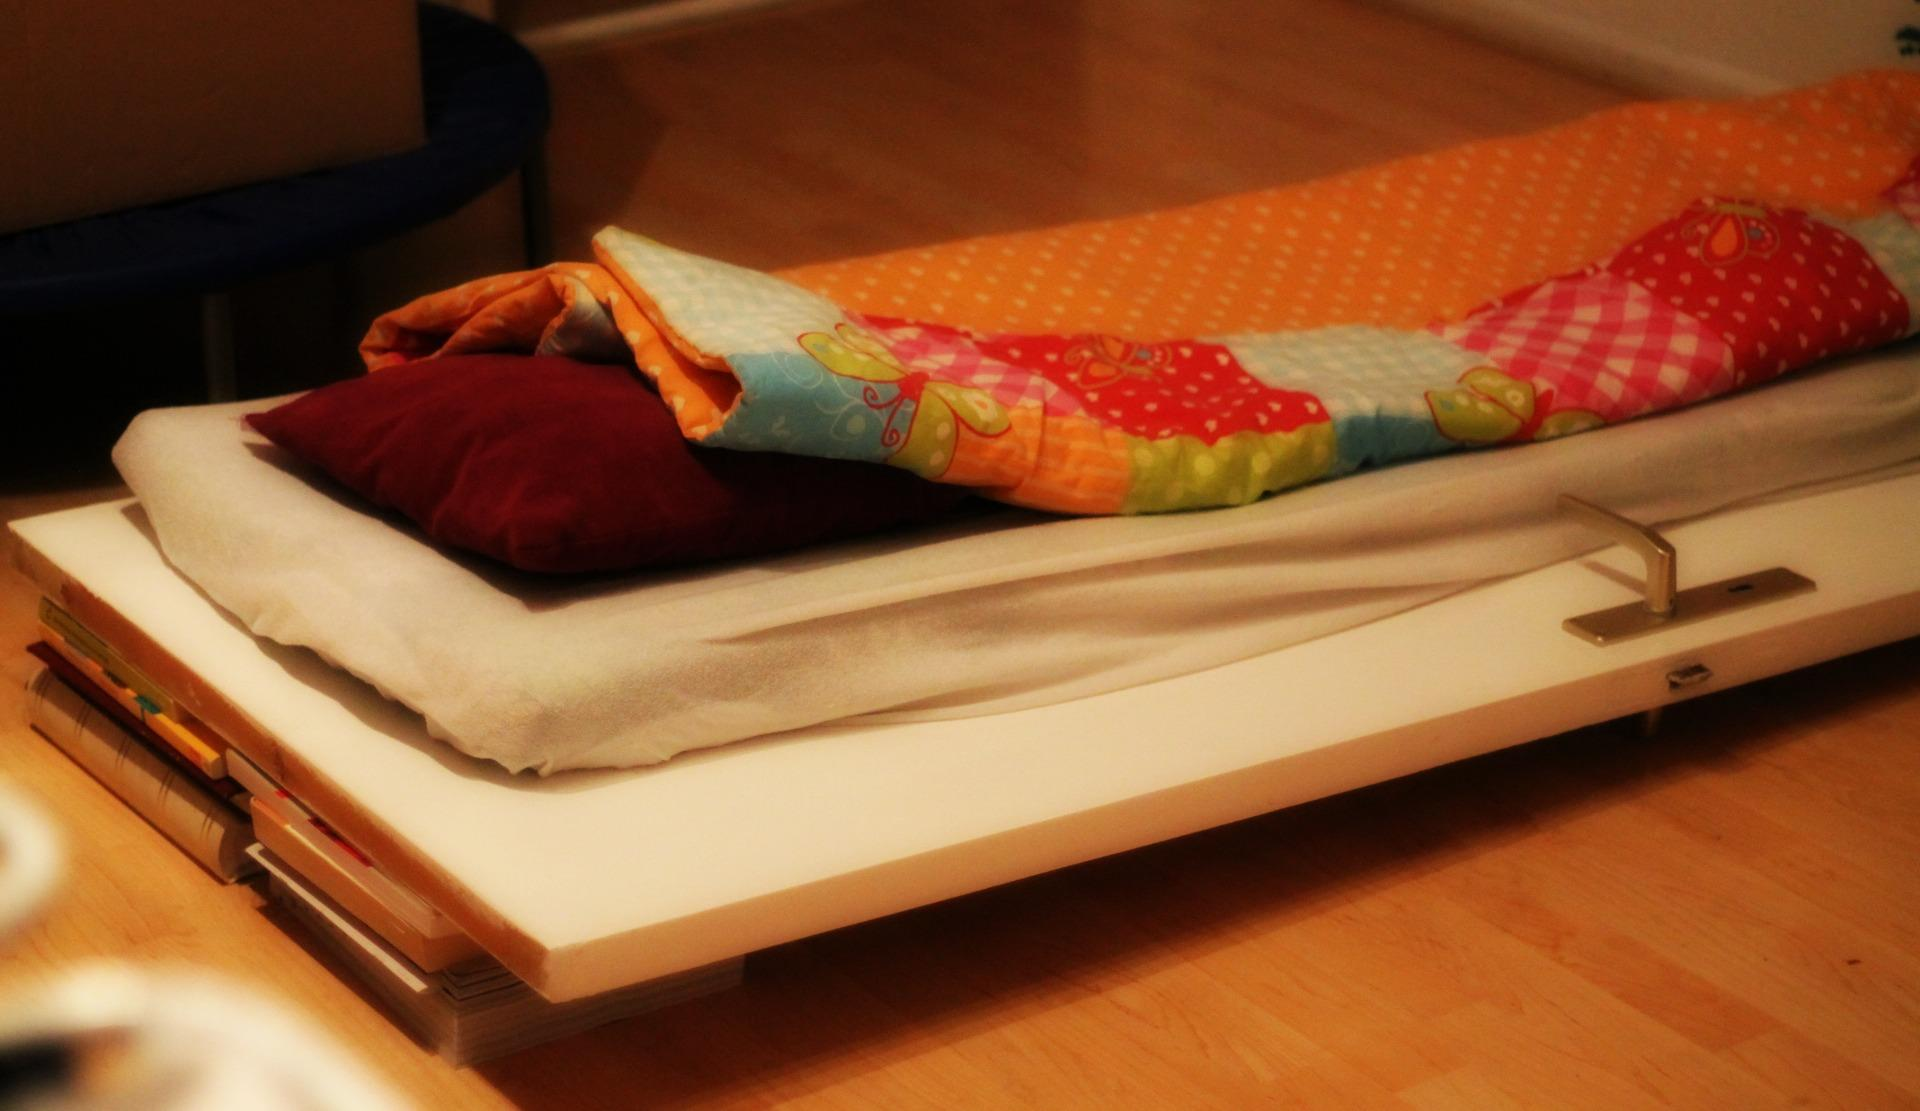 When is a door not a door? When it's an inclined bed that improves your health and wellbeing